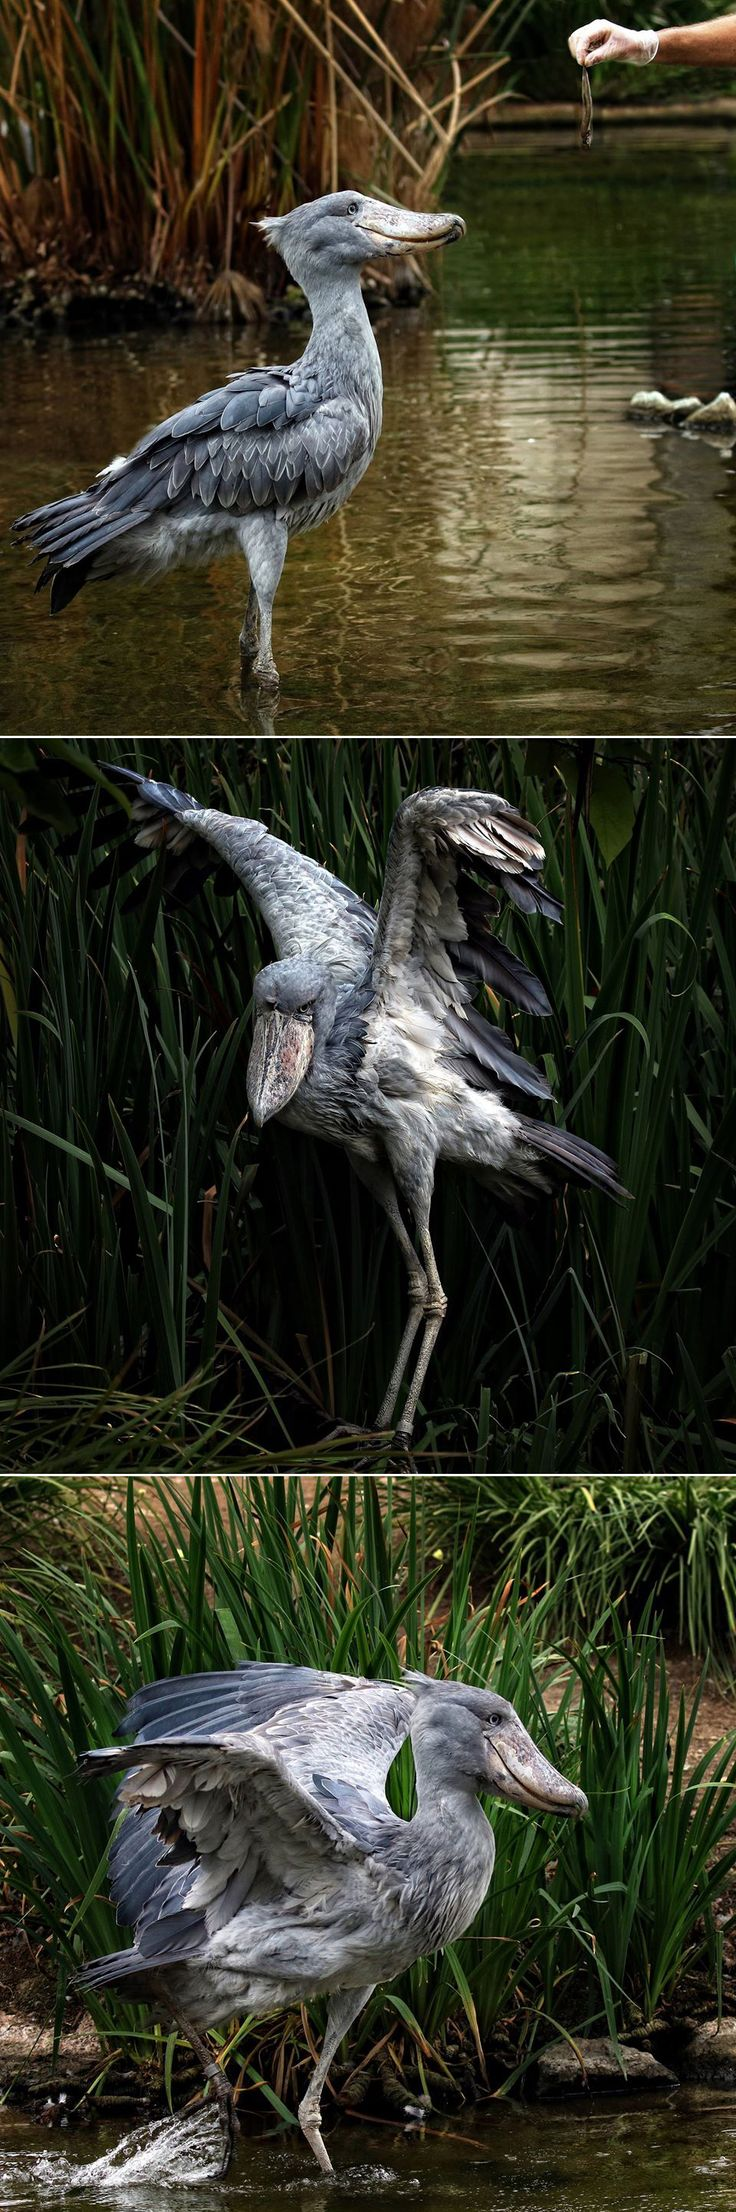 "The shoebill stork has an impressive bill that resembles a Dutch wooden shoe. Although related to storks, the shoebill's unusual bill and other characteristics place it in a family all its own. It is often compared to a statue, as the bird stands still for long periods of time in marshes, waiting for a fishy meal to surface. This ""freeze-and-seize strategy ensures that the stork lands its prey. (photos: Anita Ross)"